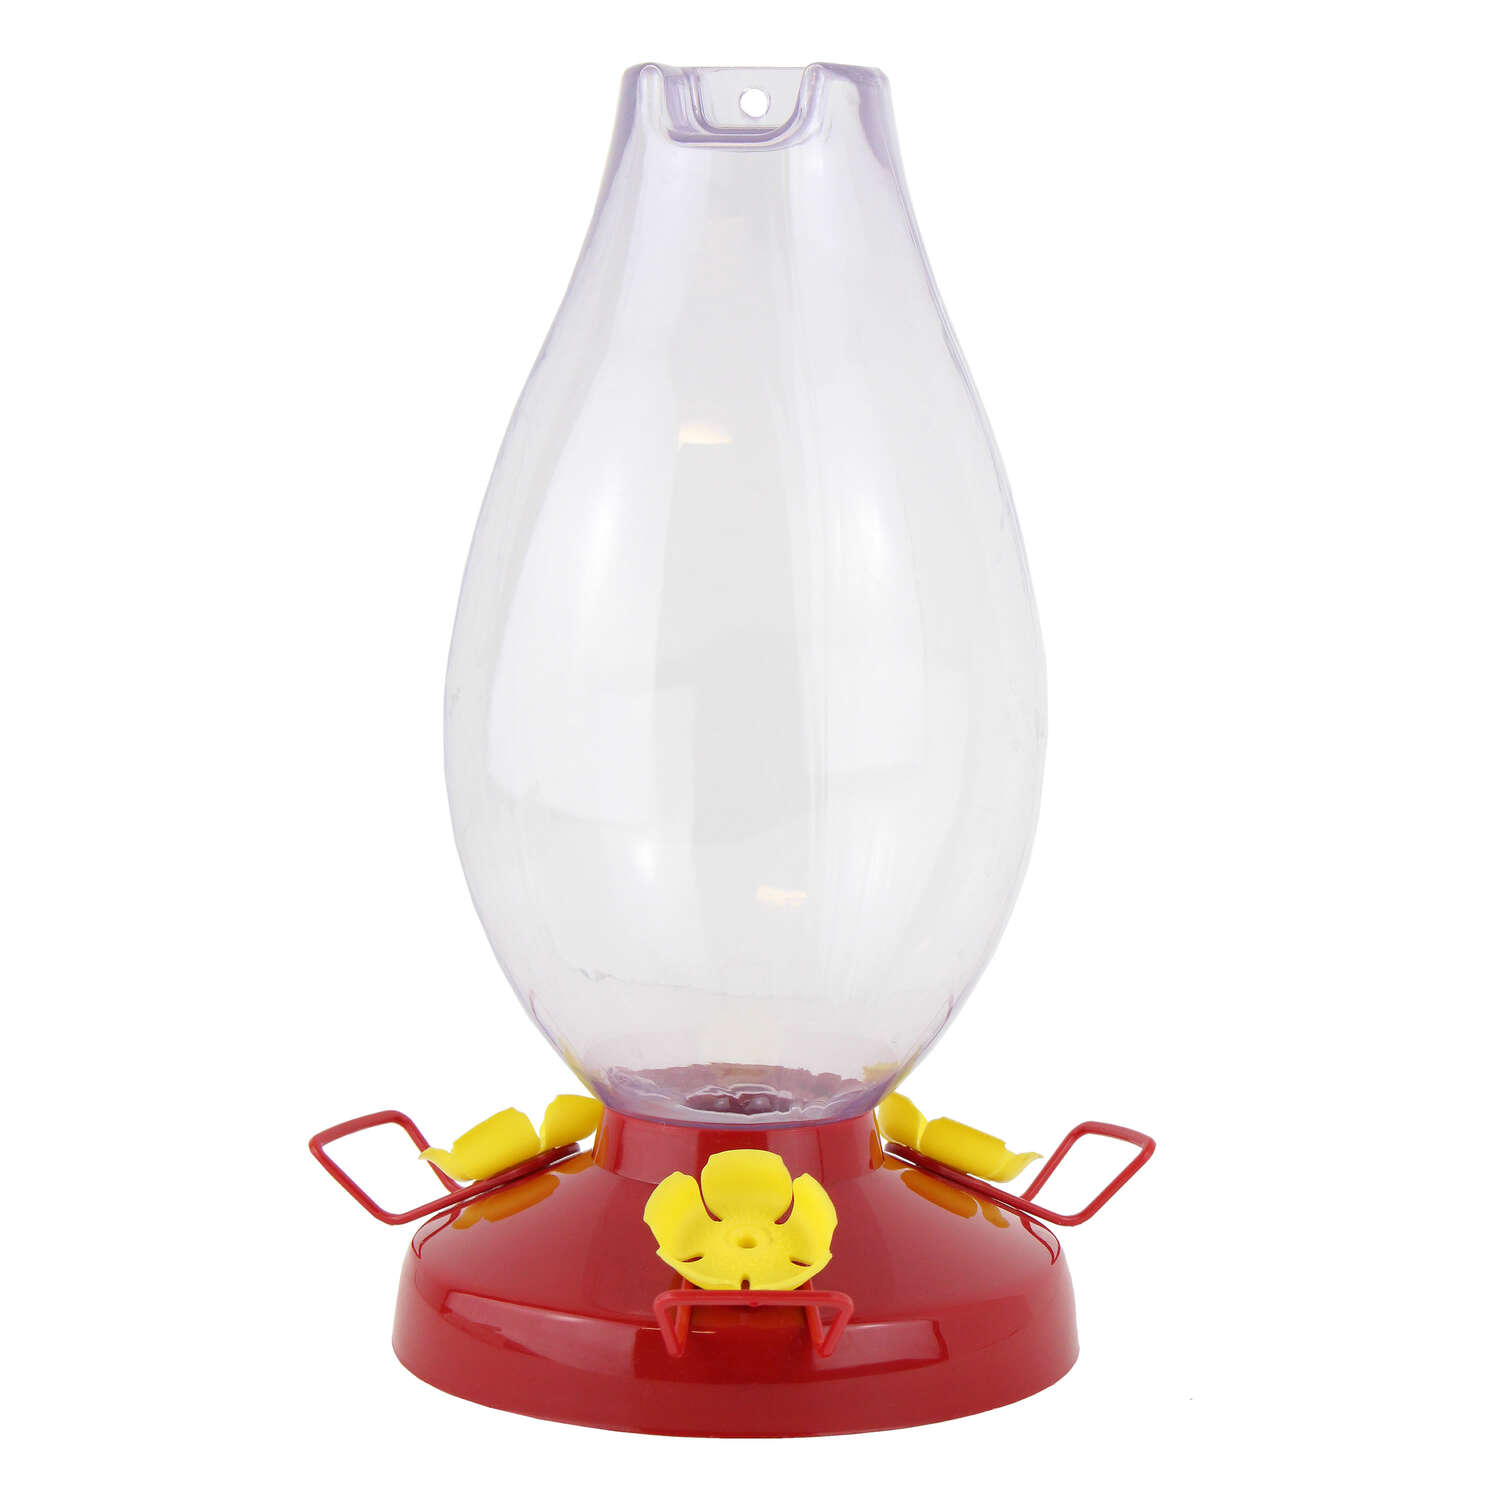 Perky-Pet Hummingbird 32 oz. Plastic Nectar Feeder